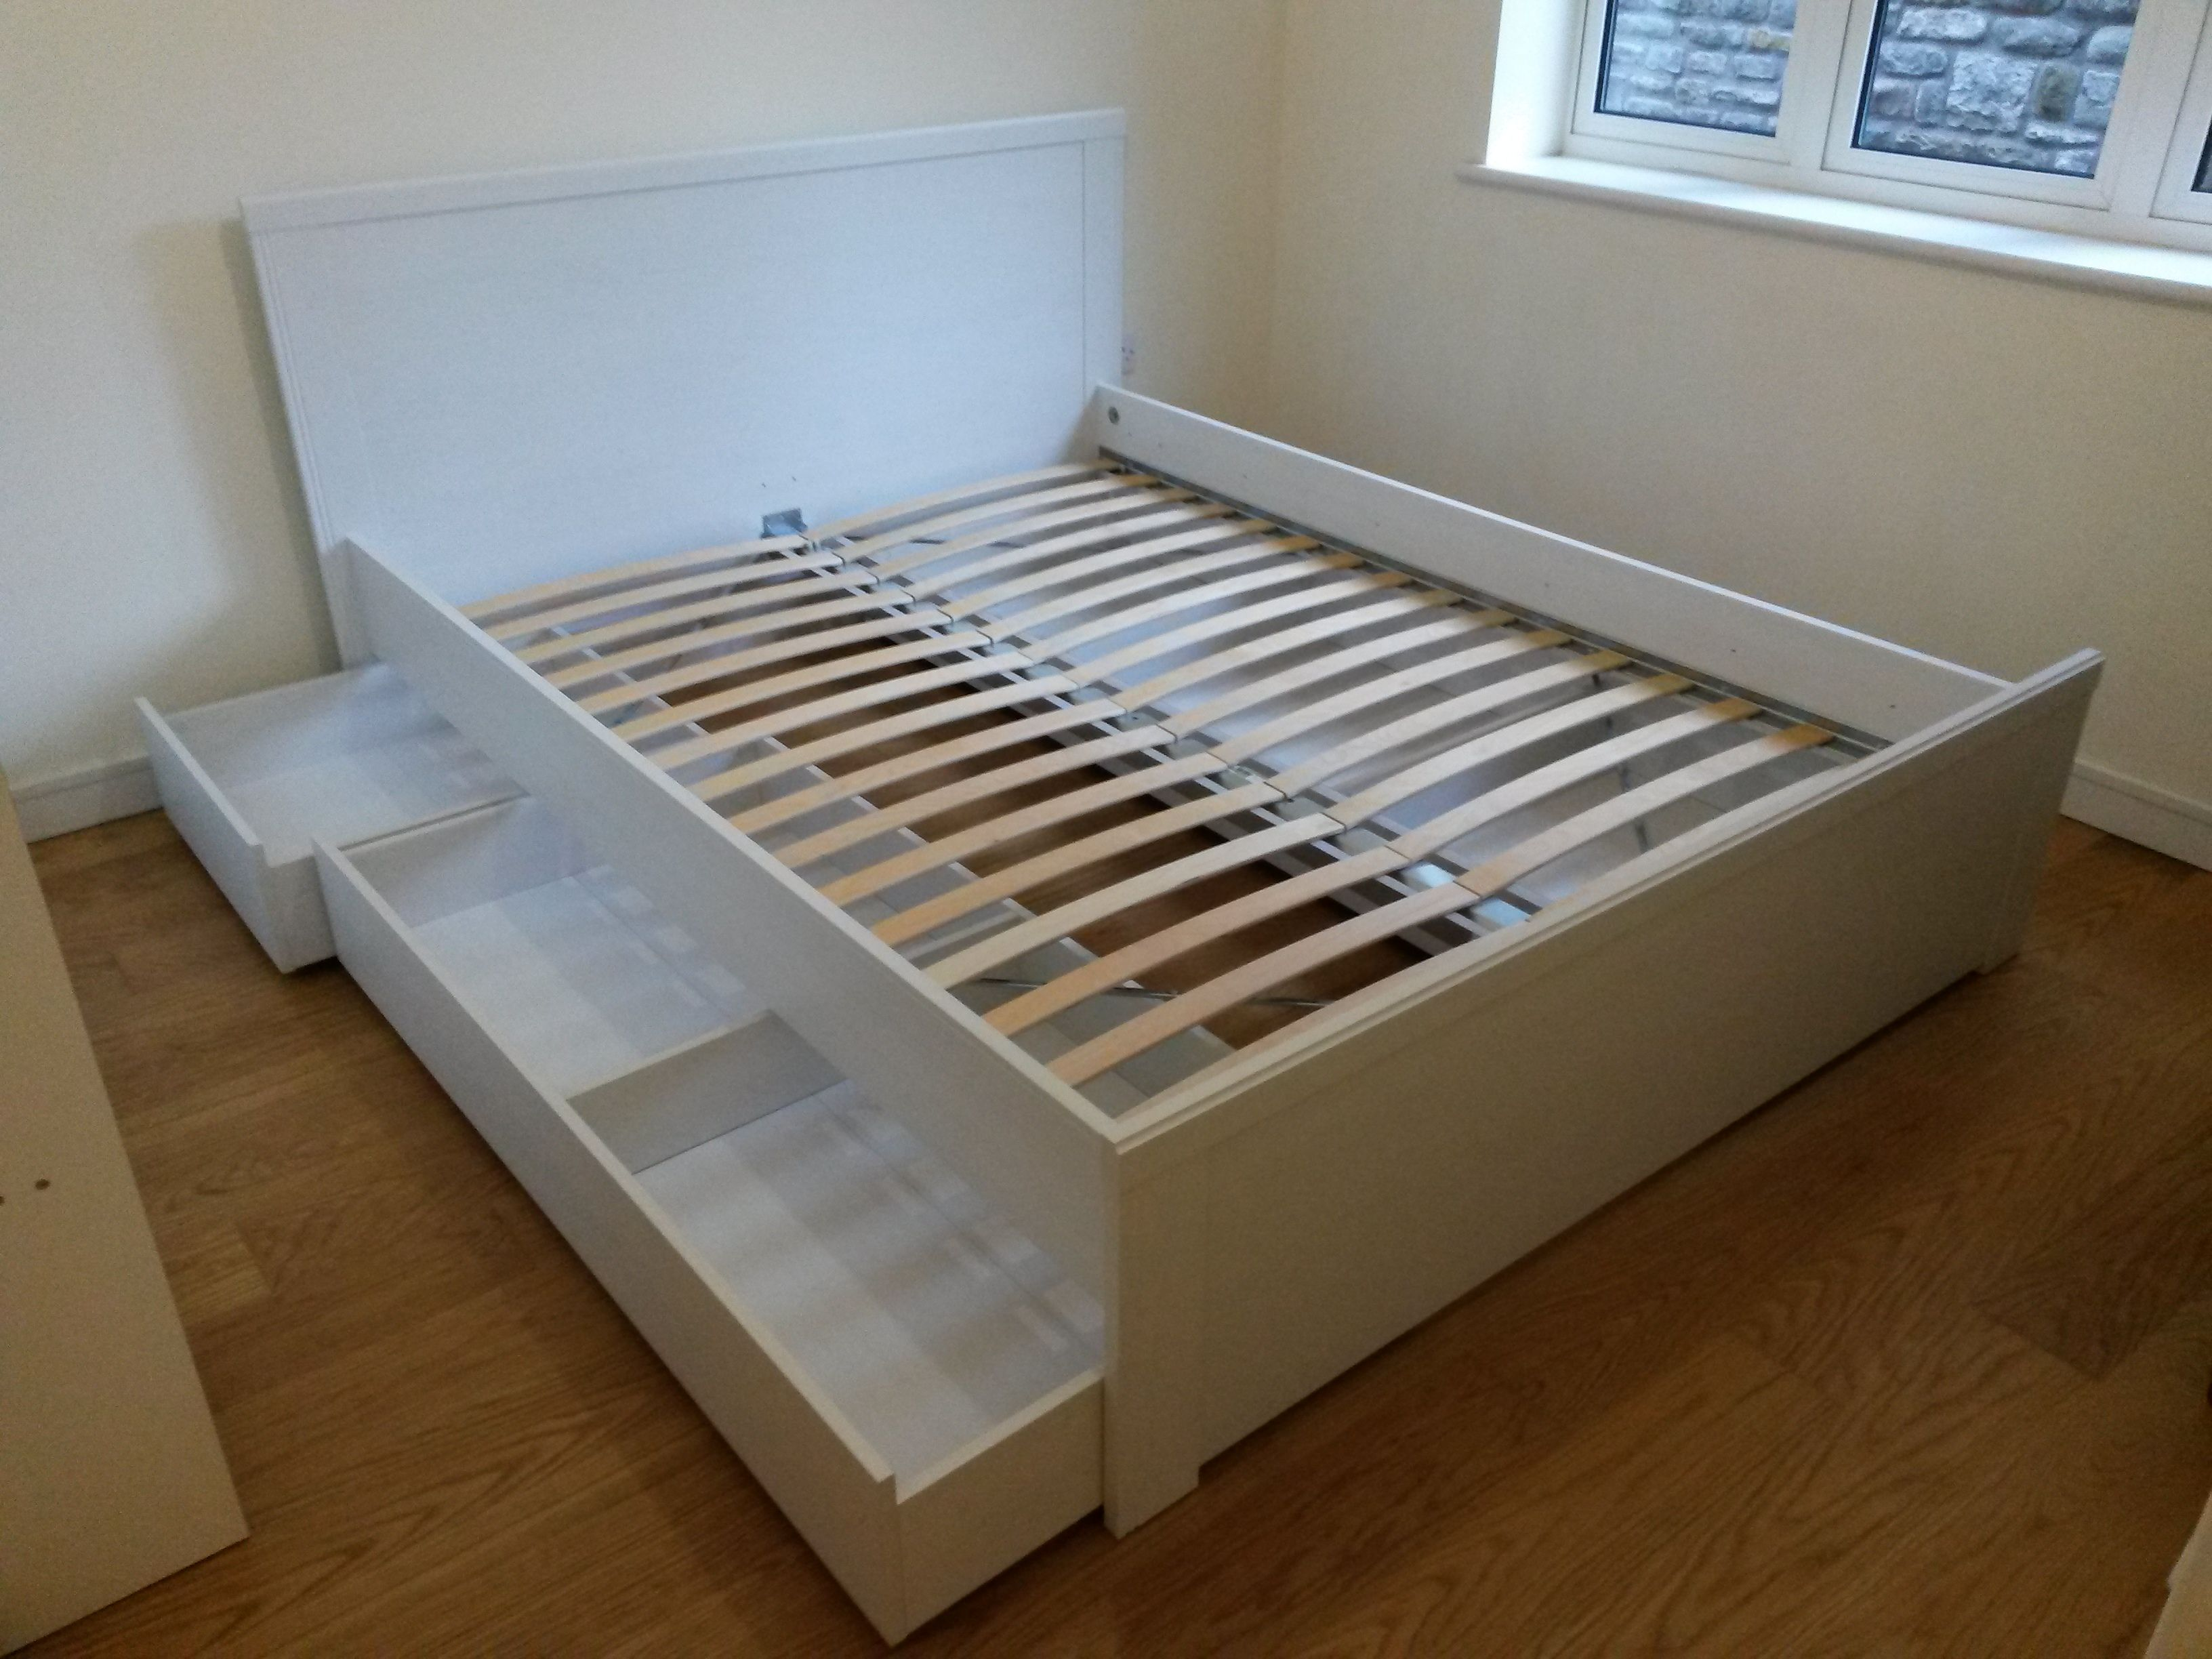 Tweepersoonsbed Frame Ikea Brusali Double Bed With Under Bed Storage Drawers